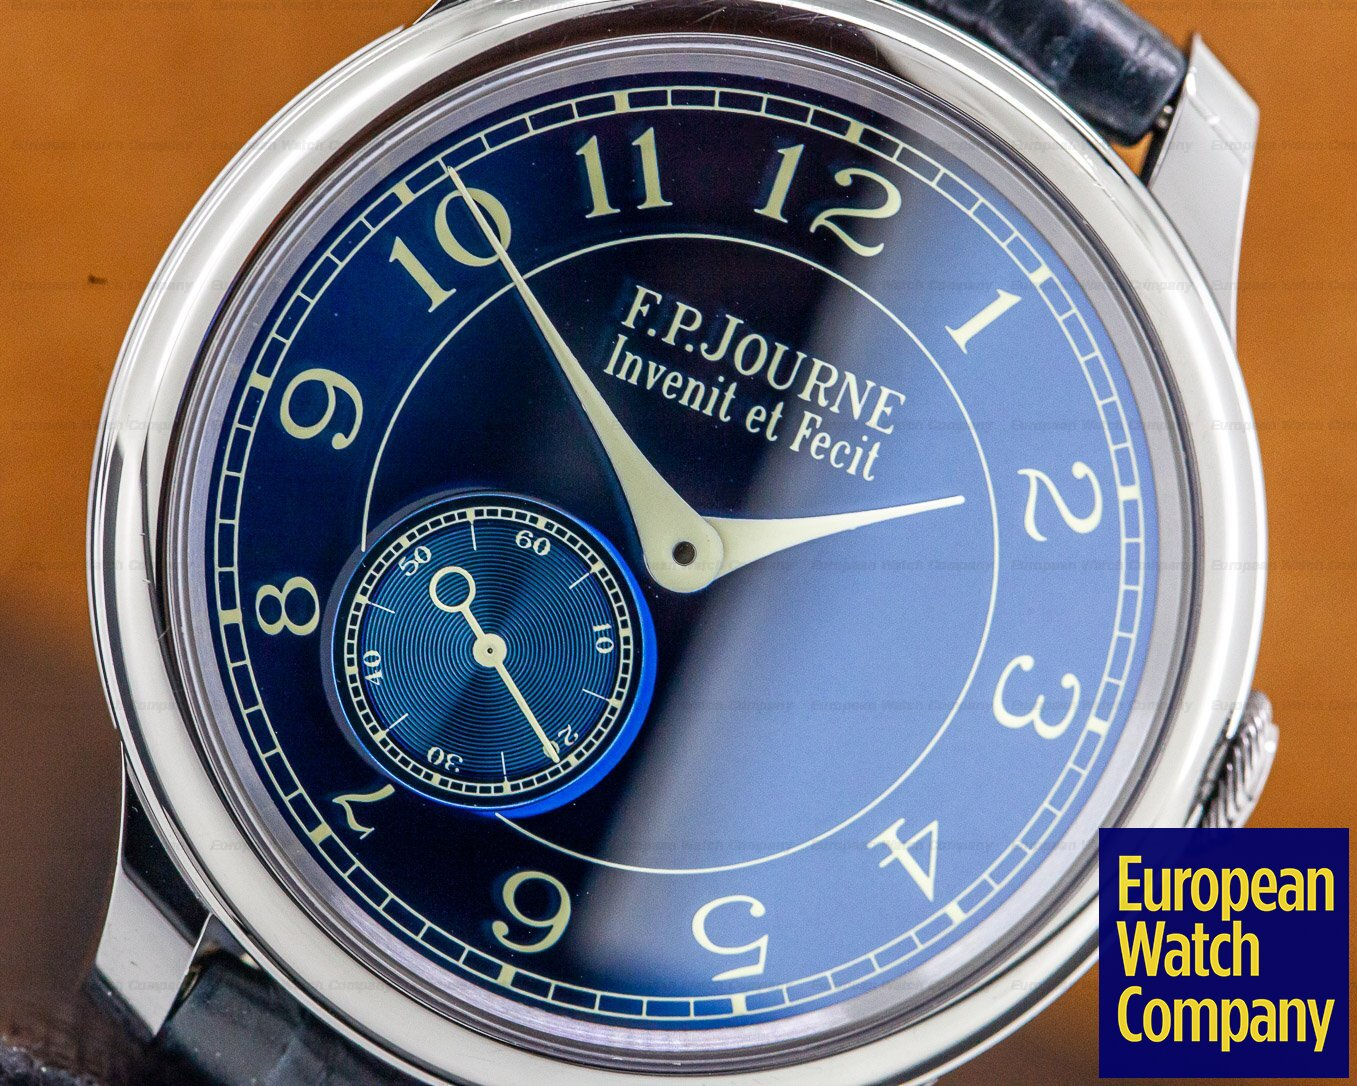 F. P. Journe Chronometre Bleu Chronometre Bleu Tantalum Blue Dial